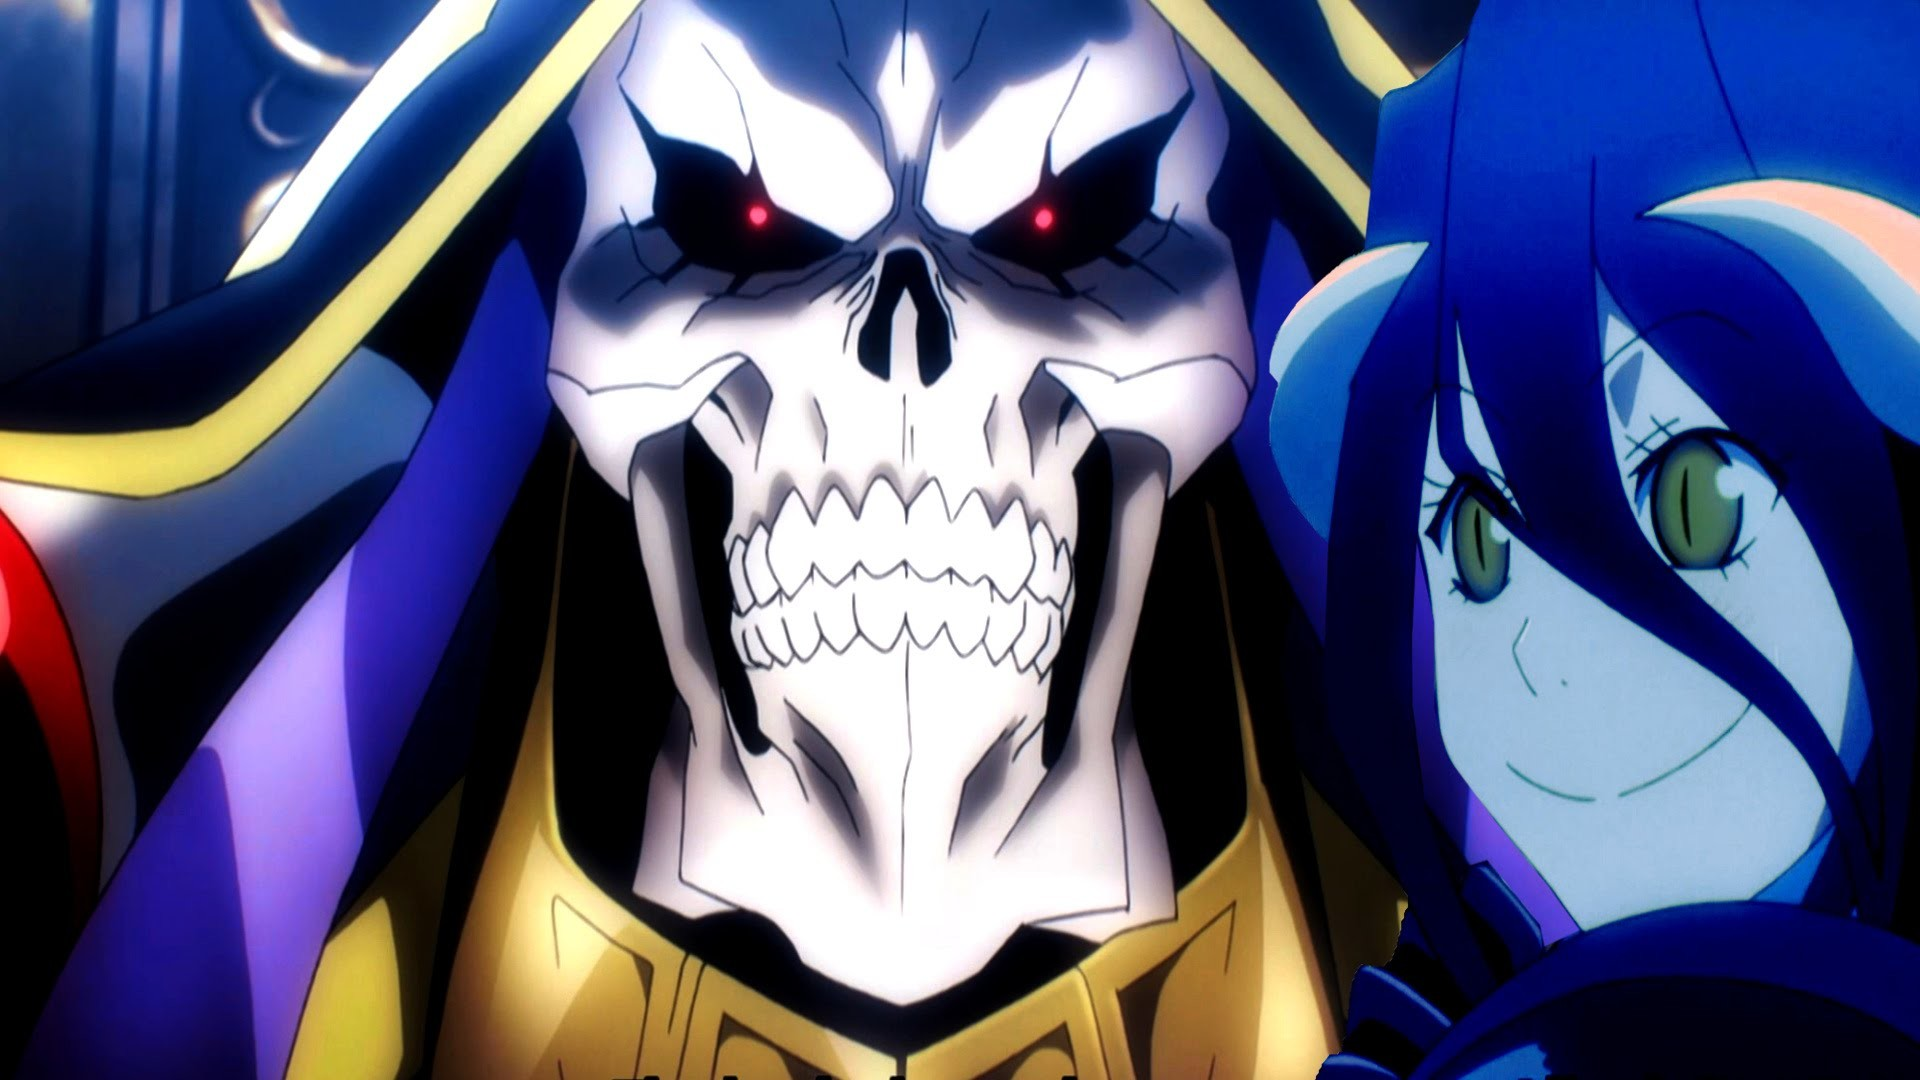 1920x1080 Overlord Episode 4 オーバーロード Anime Review - Ainz The Overlord - YouTube